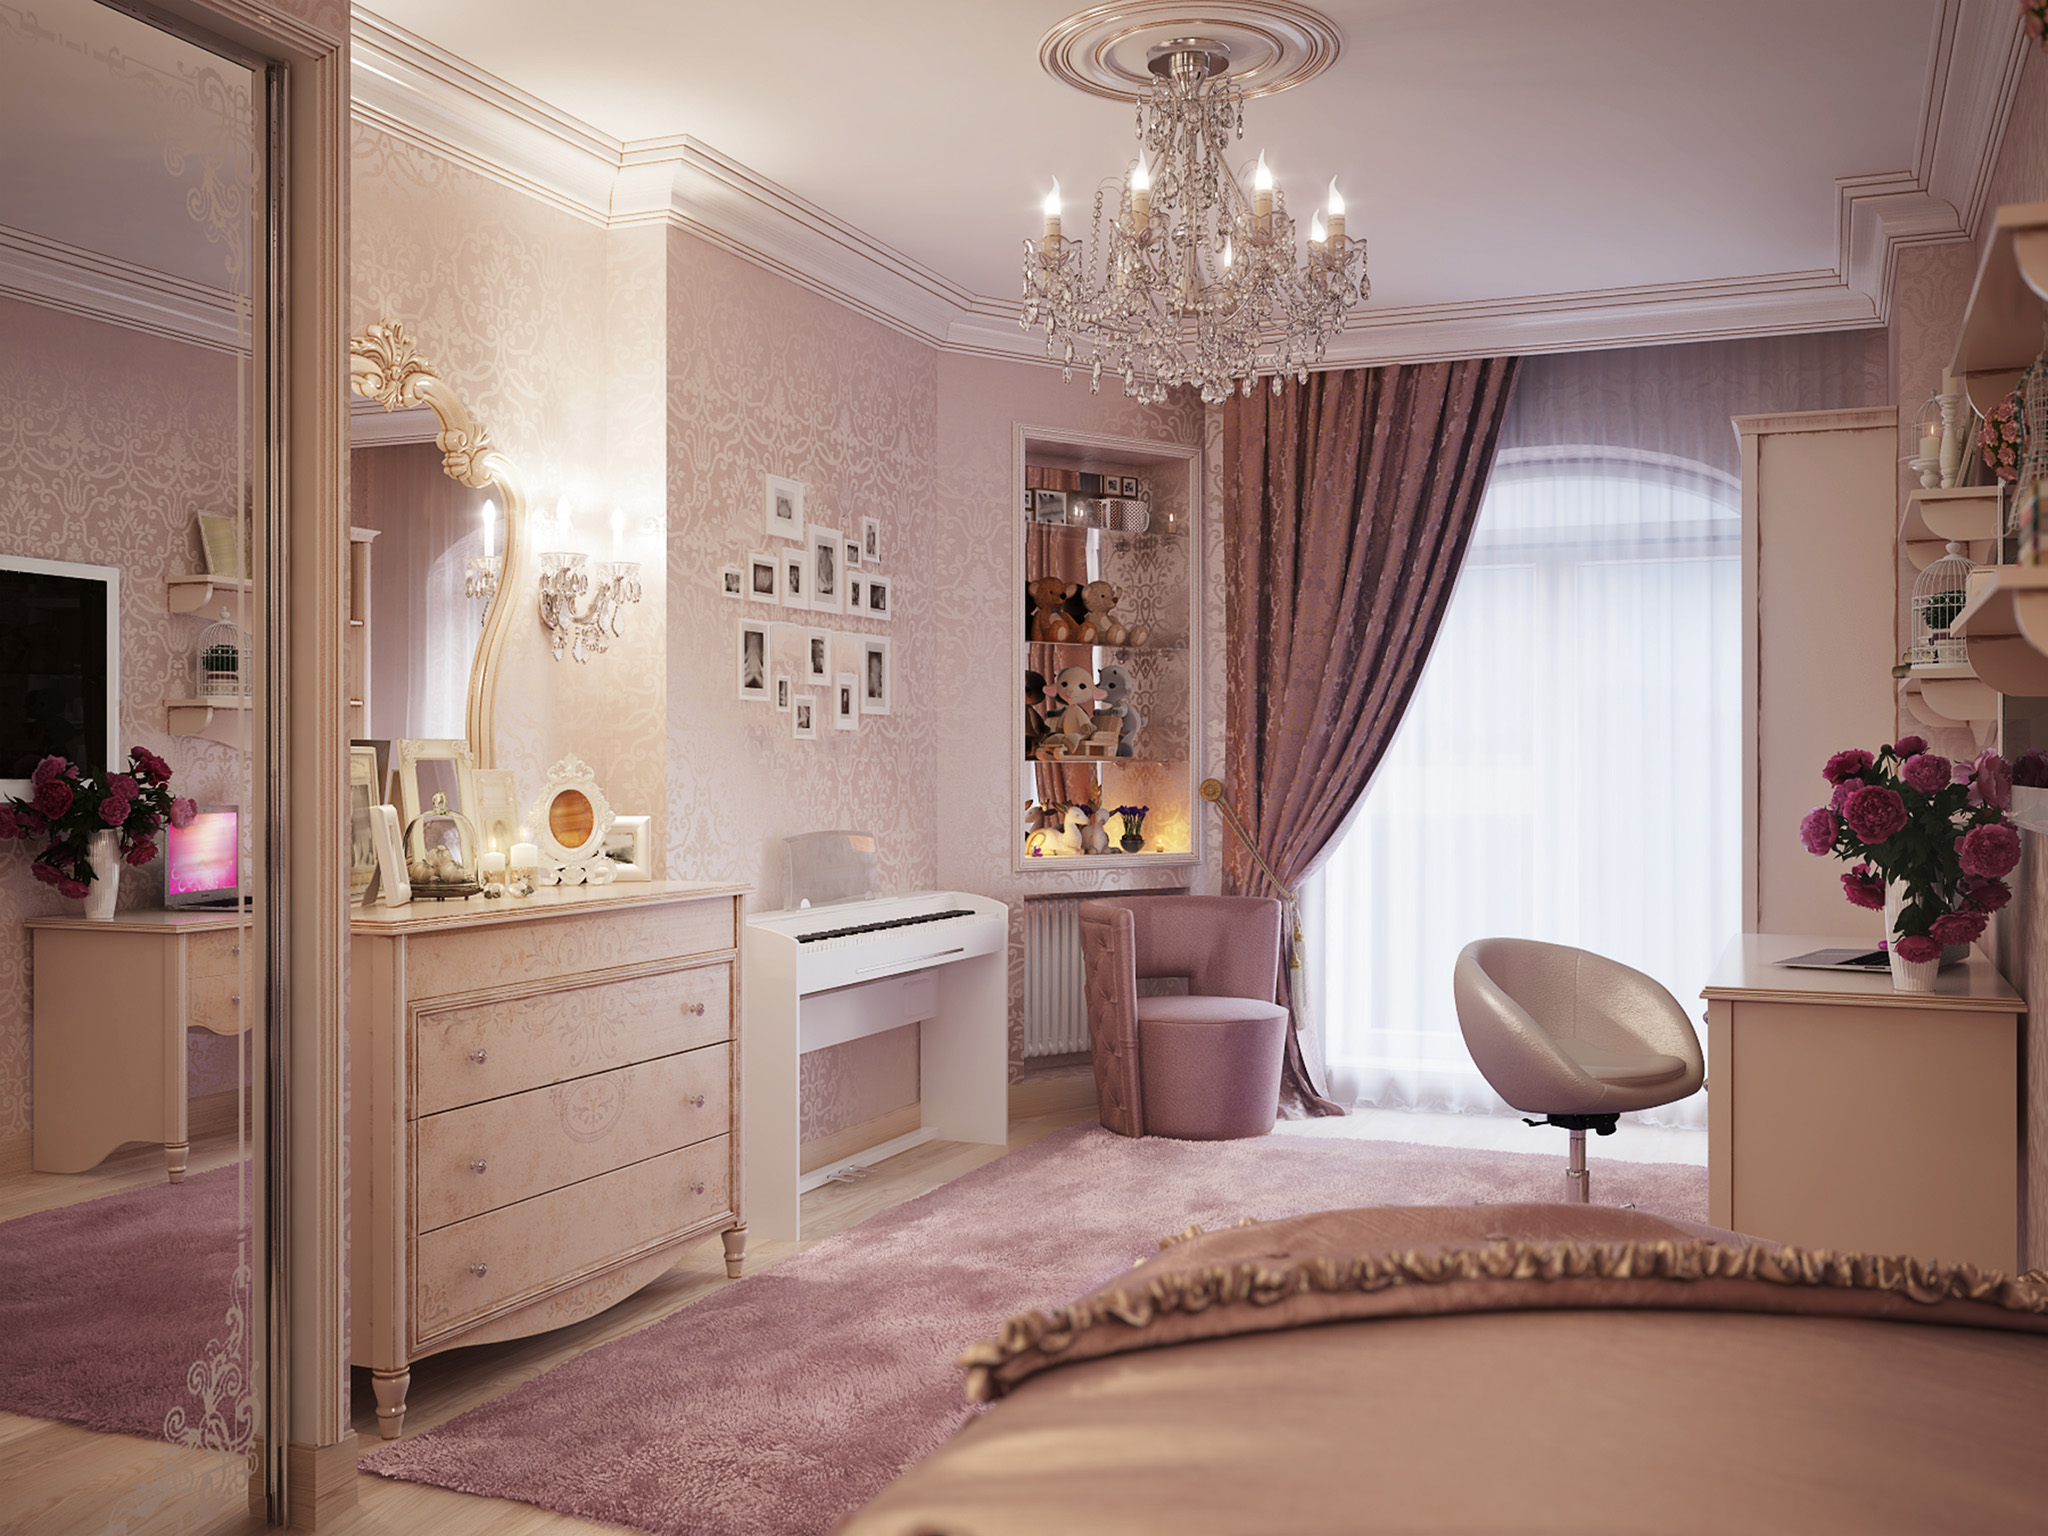 Fitted Wardrobes Ideas - White Wardrobe Design Bedroom Furniture Barnet, London, matching bedroom furniture set with mirrored wardrobes, chest of drawers dressing table and bedroom chair